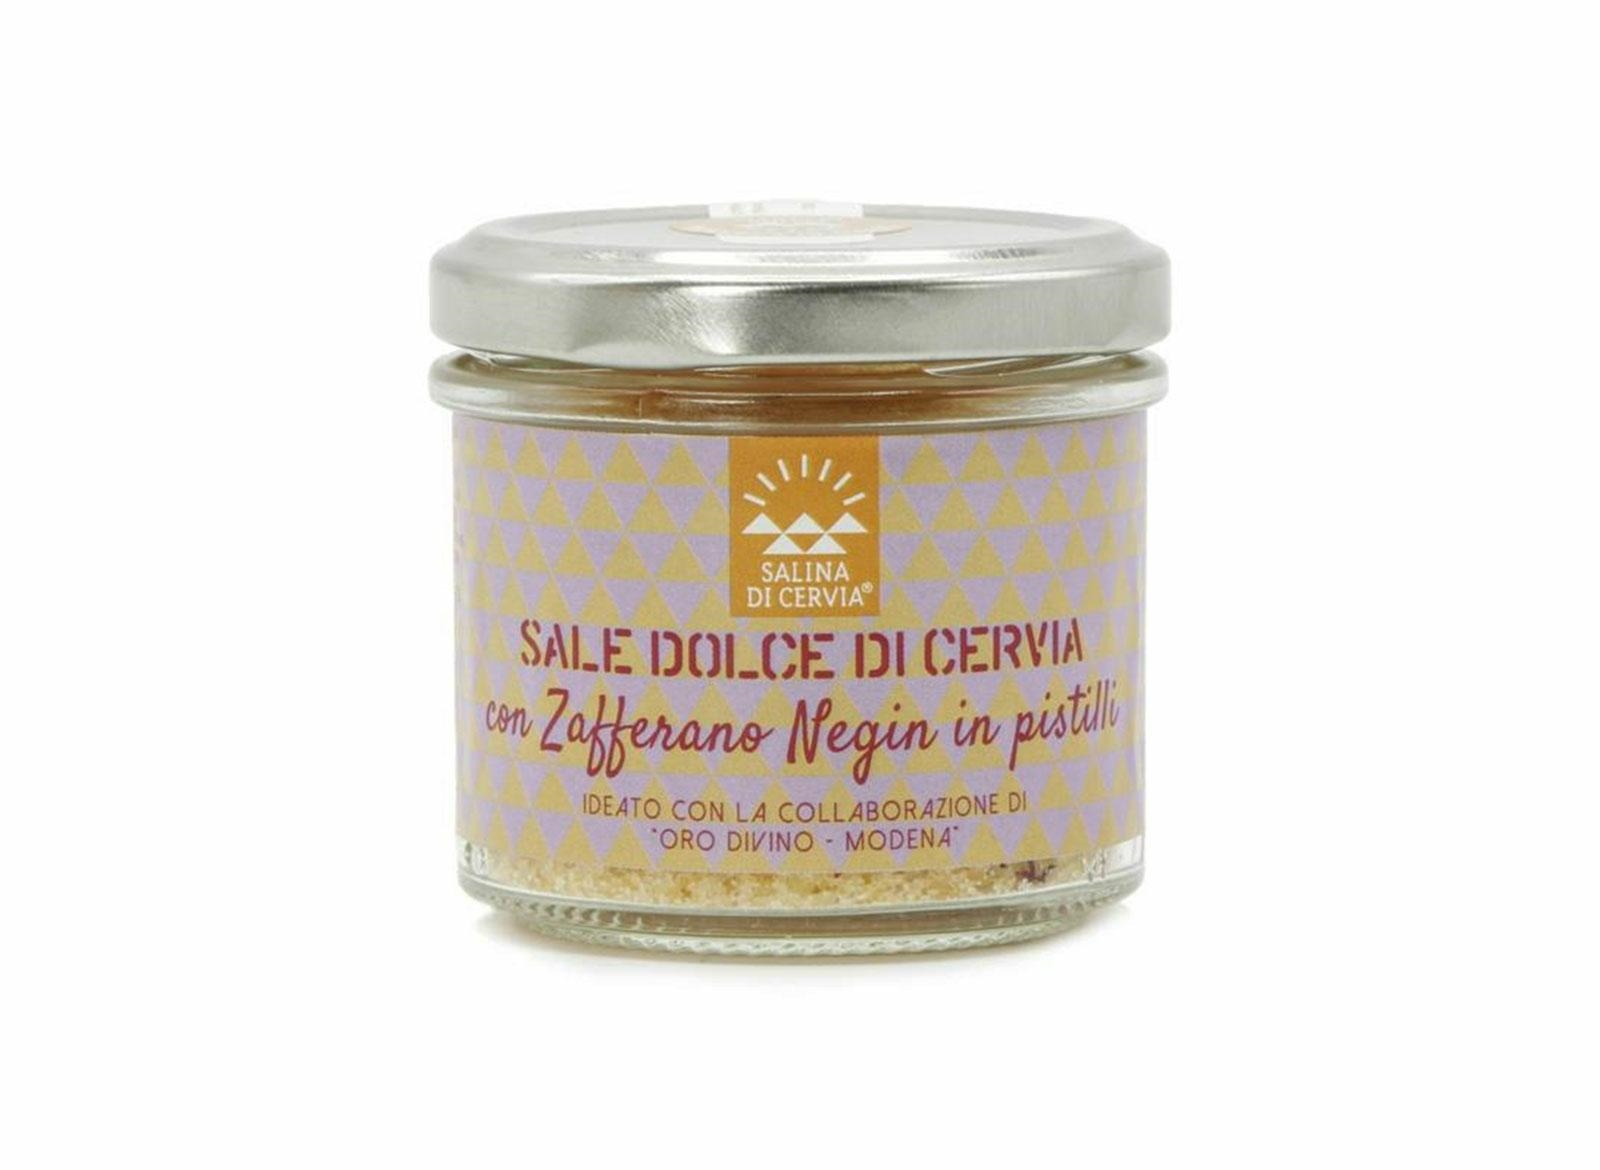 Sale con zafferano Negin in pistilli 80g